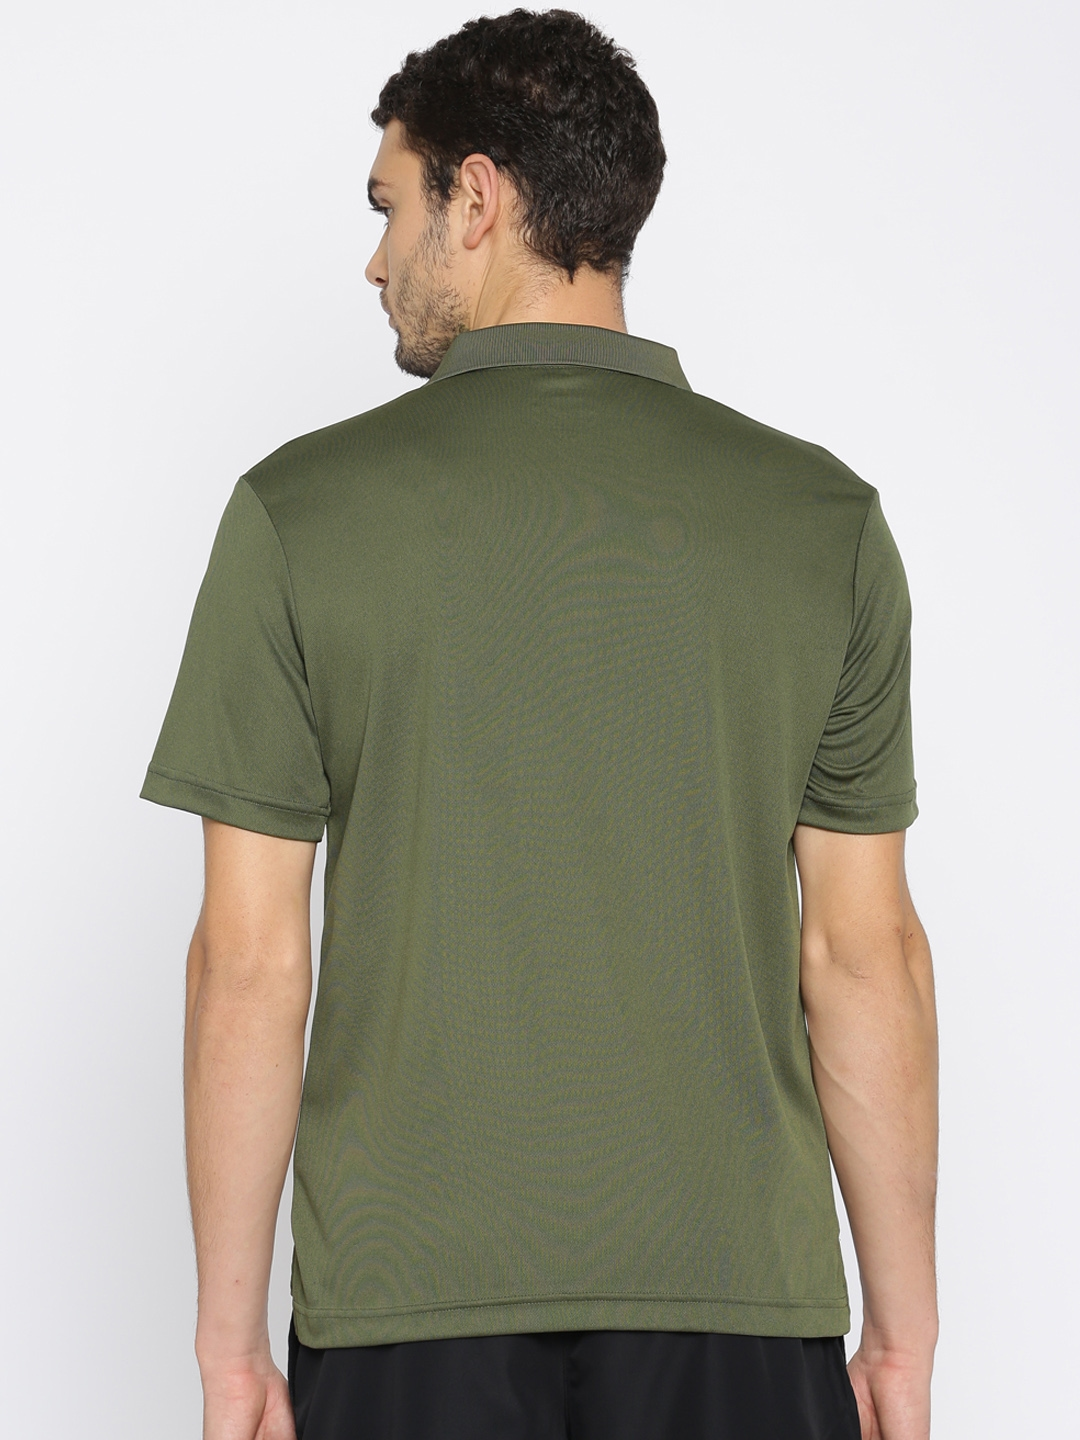 d58be47e Buy Puma Men Olive Green ACTIVE Pique Polo T Shirt - Tshirts for Men ...